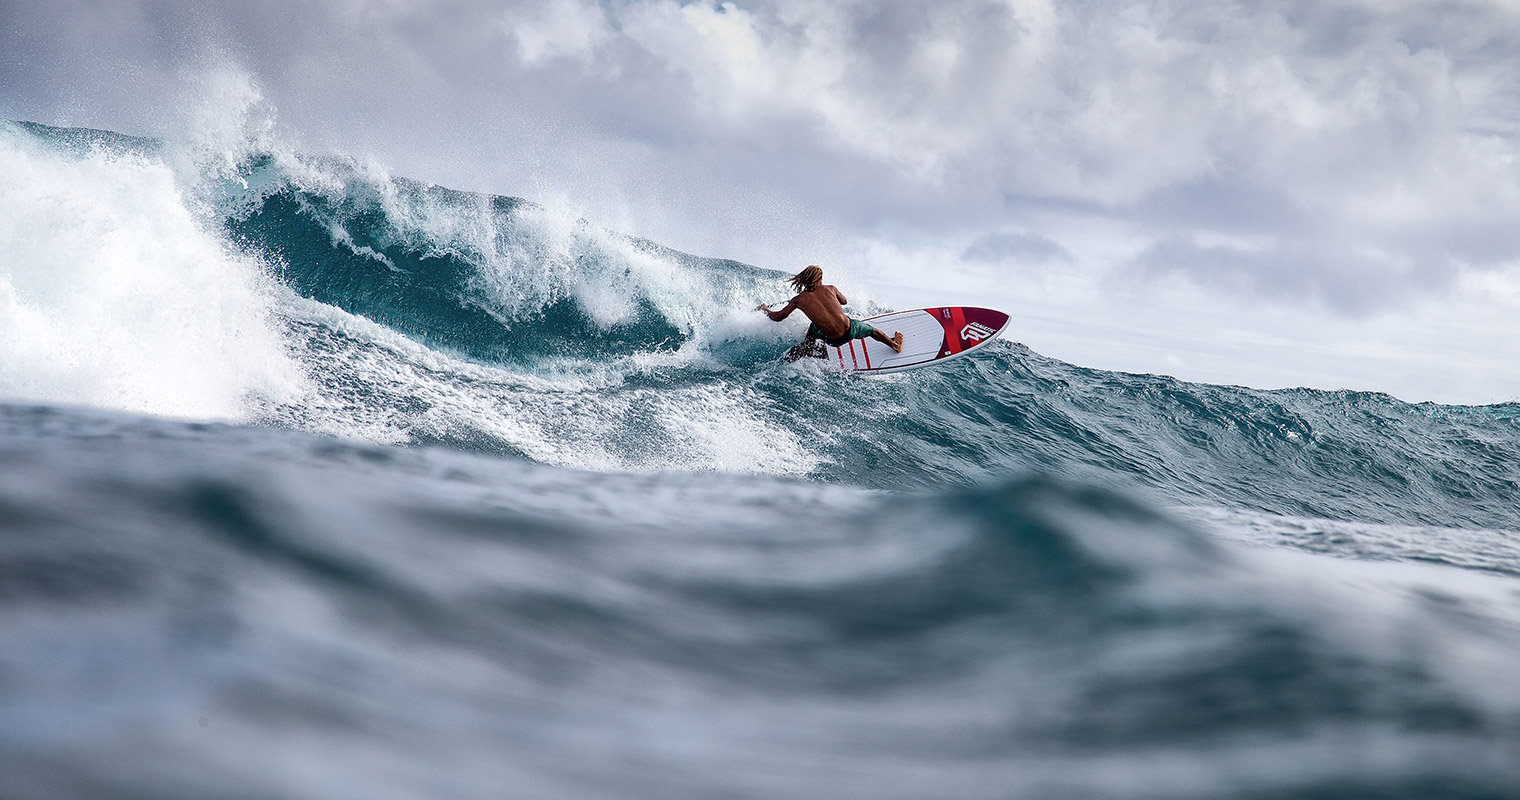 Airton_ProWaveHRS_MauiJohnCarter_Fanatic-F16_SUP_DY6_D2_17352